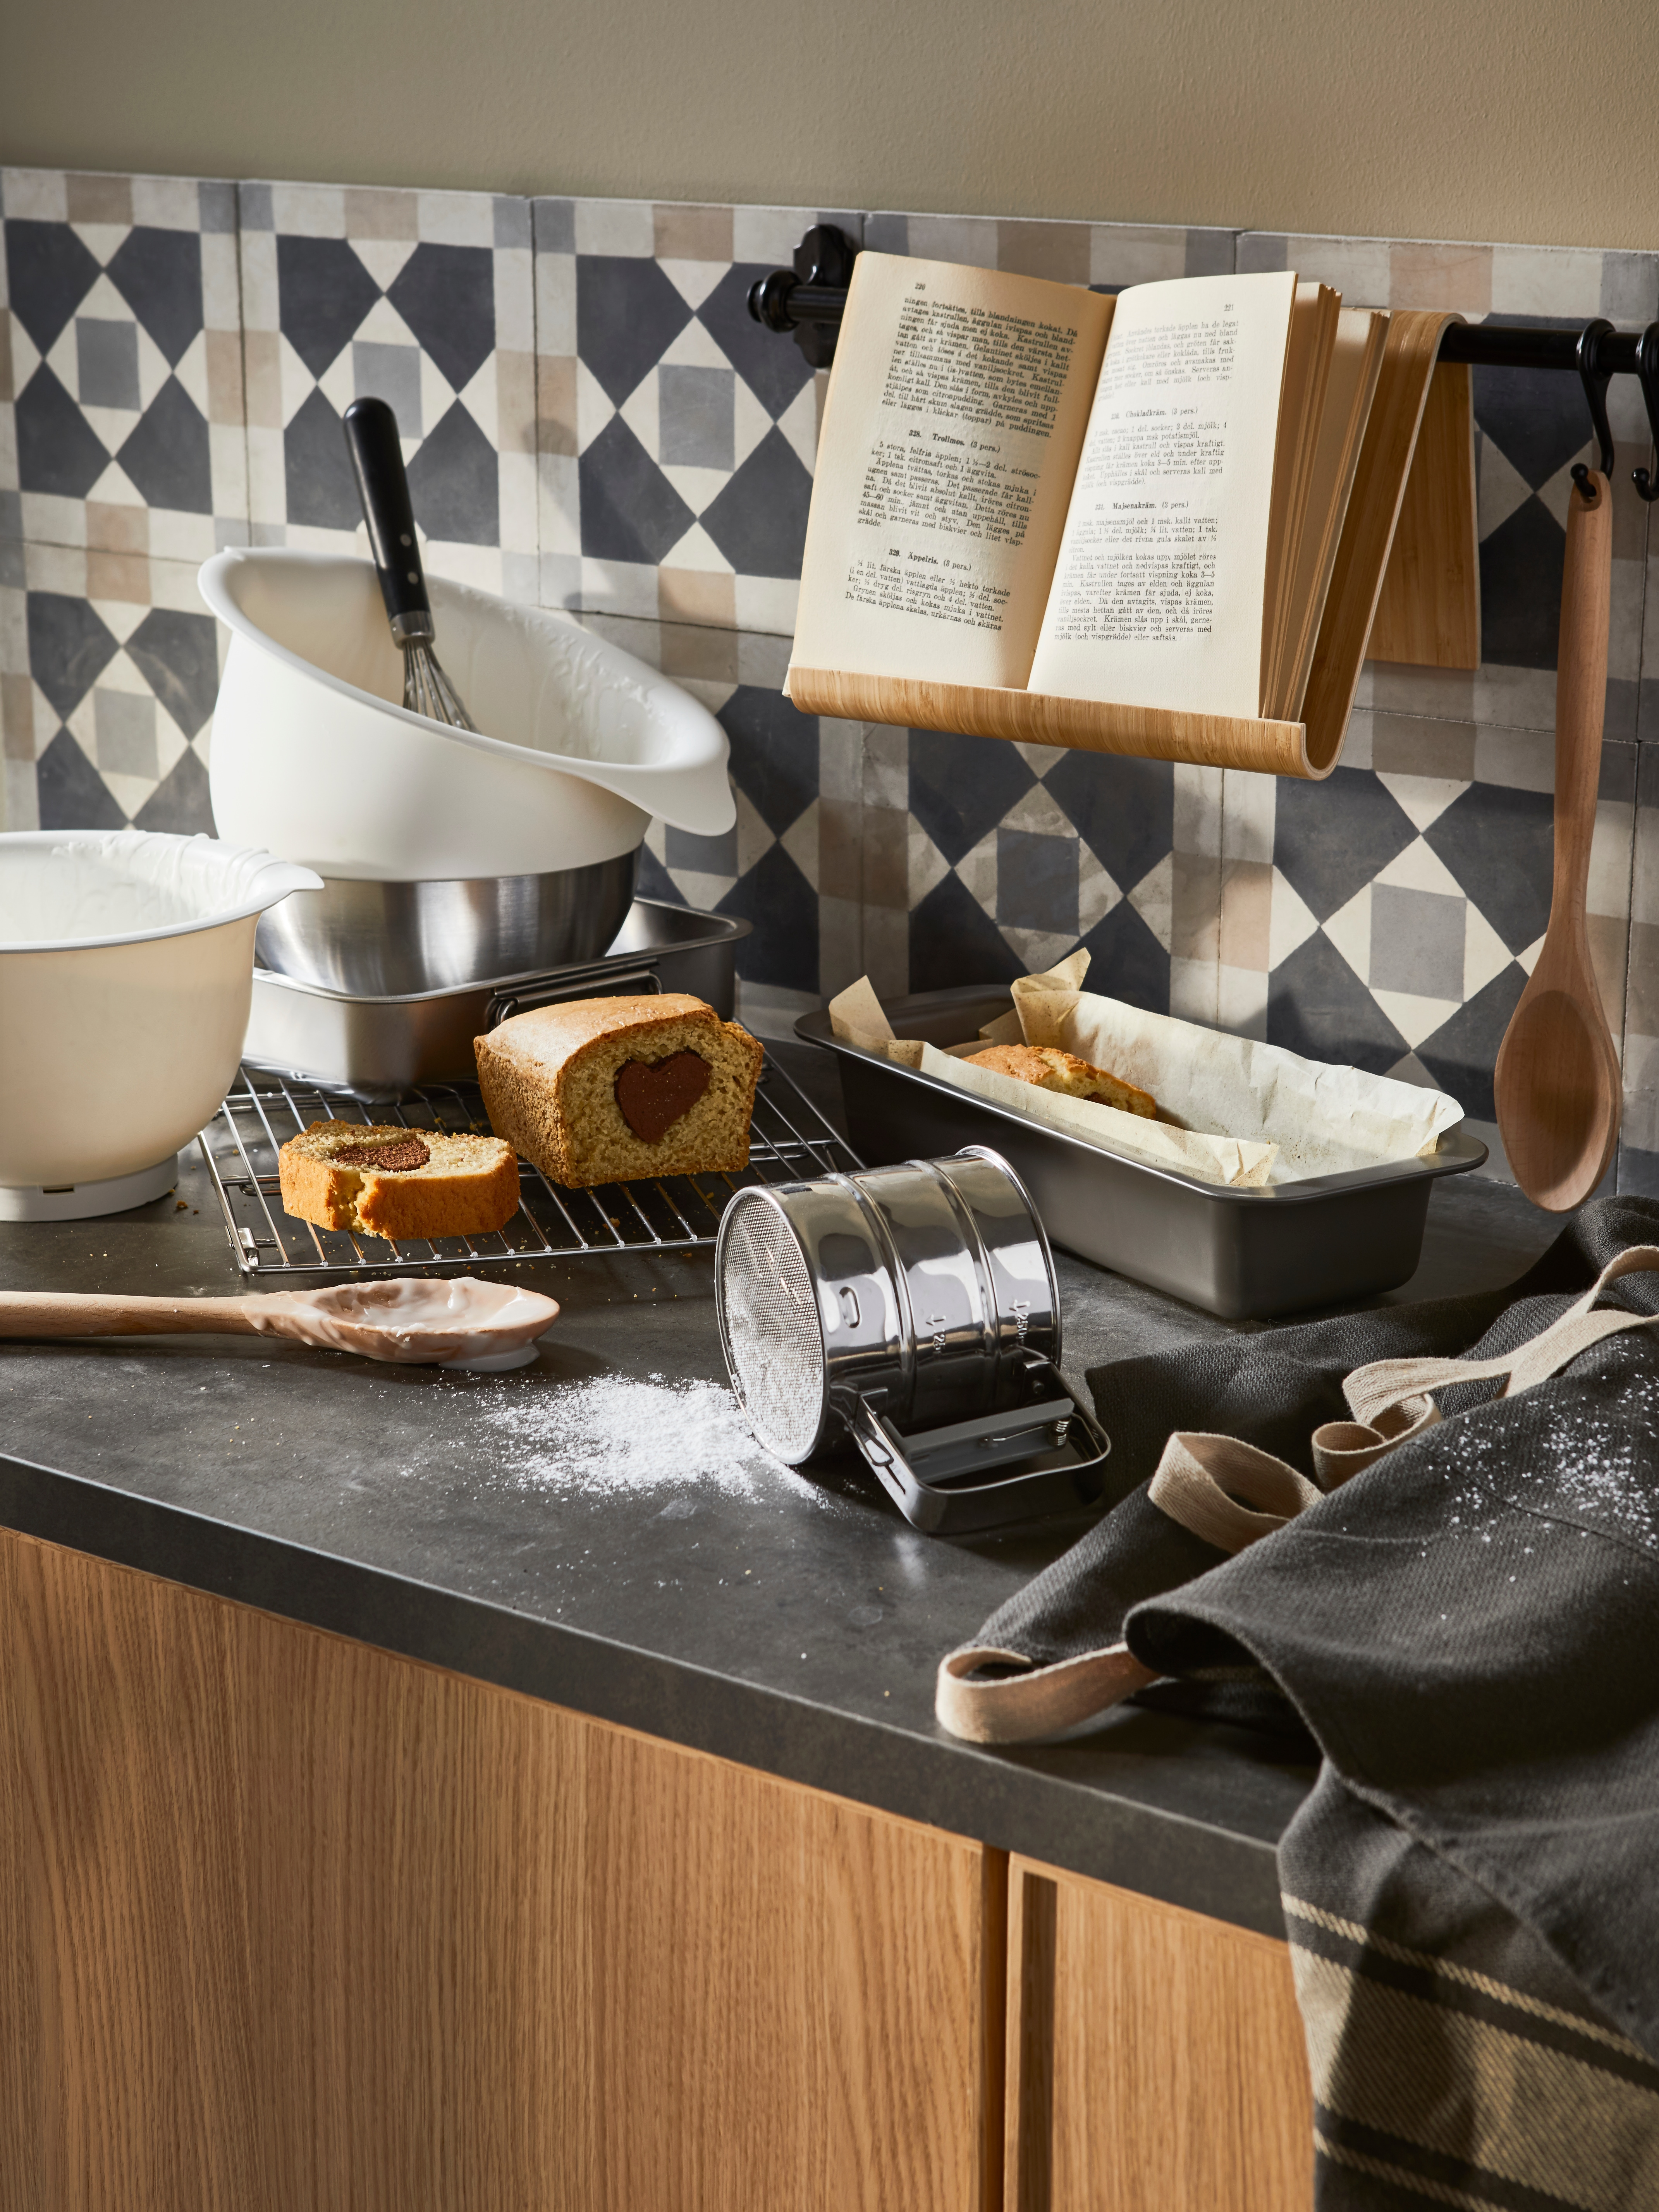 A worktop with HEMMABAK loaf tin, cake on a wire rack, stacked mixing bowls, apron, recipe book, utensils and spilt flour.